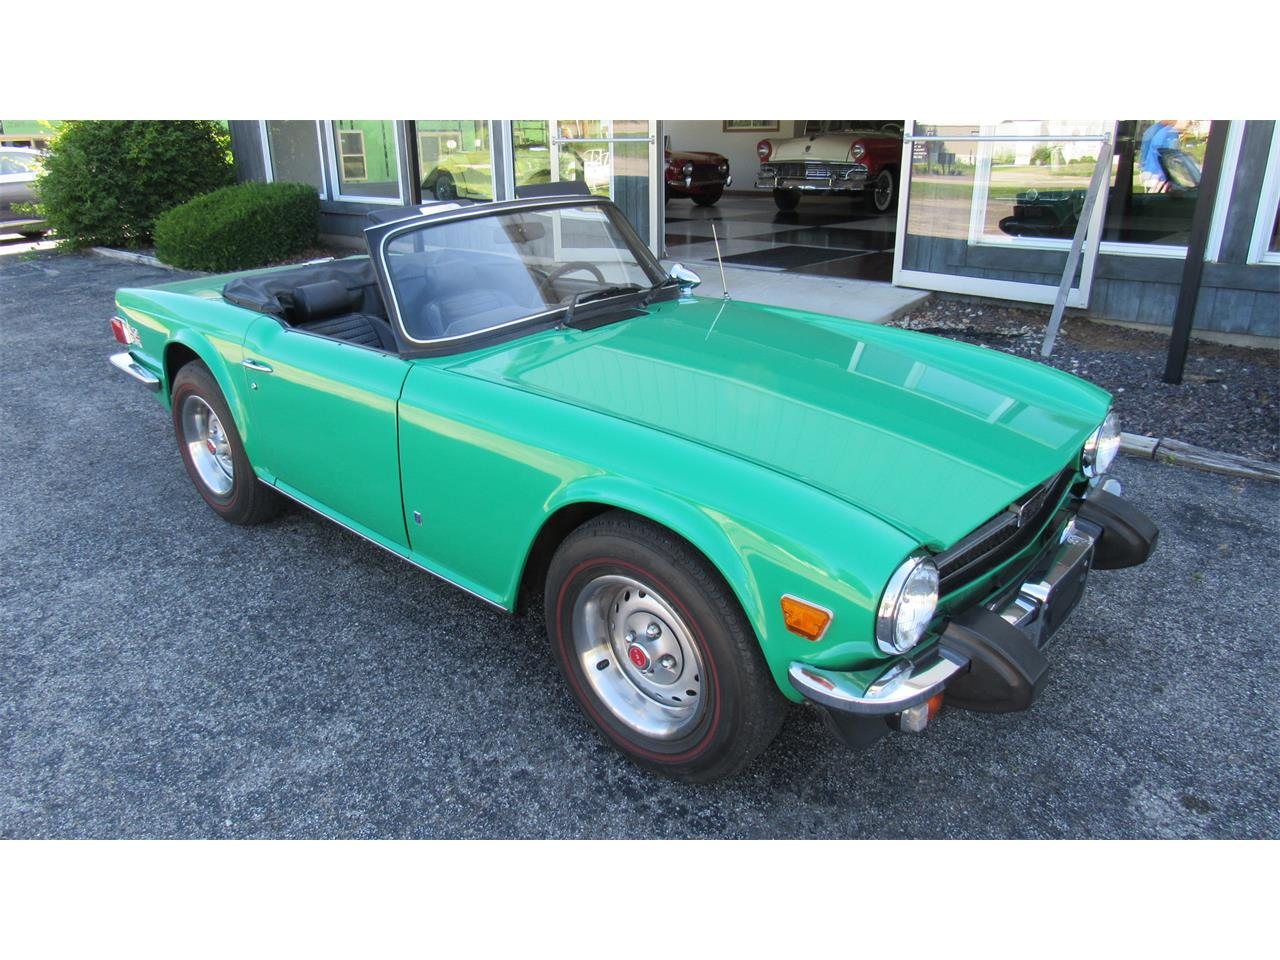 1975 Triumph TR6 (CC-1415990) for sale in WASHINGTON, Missouri